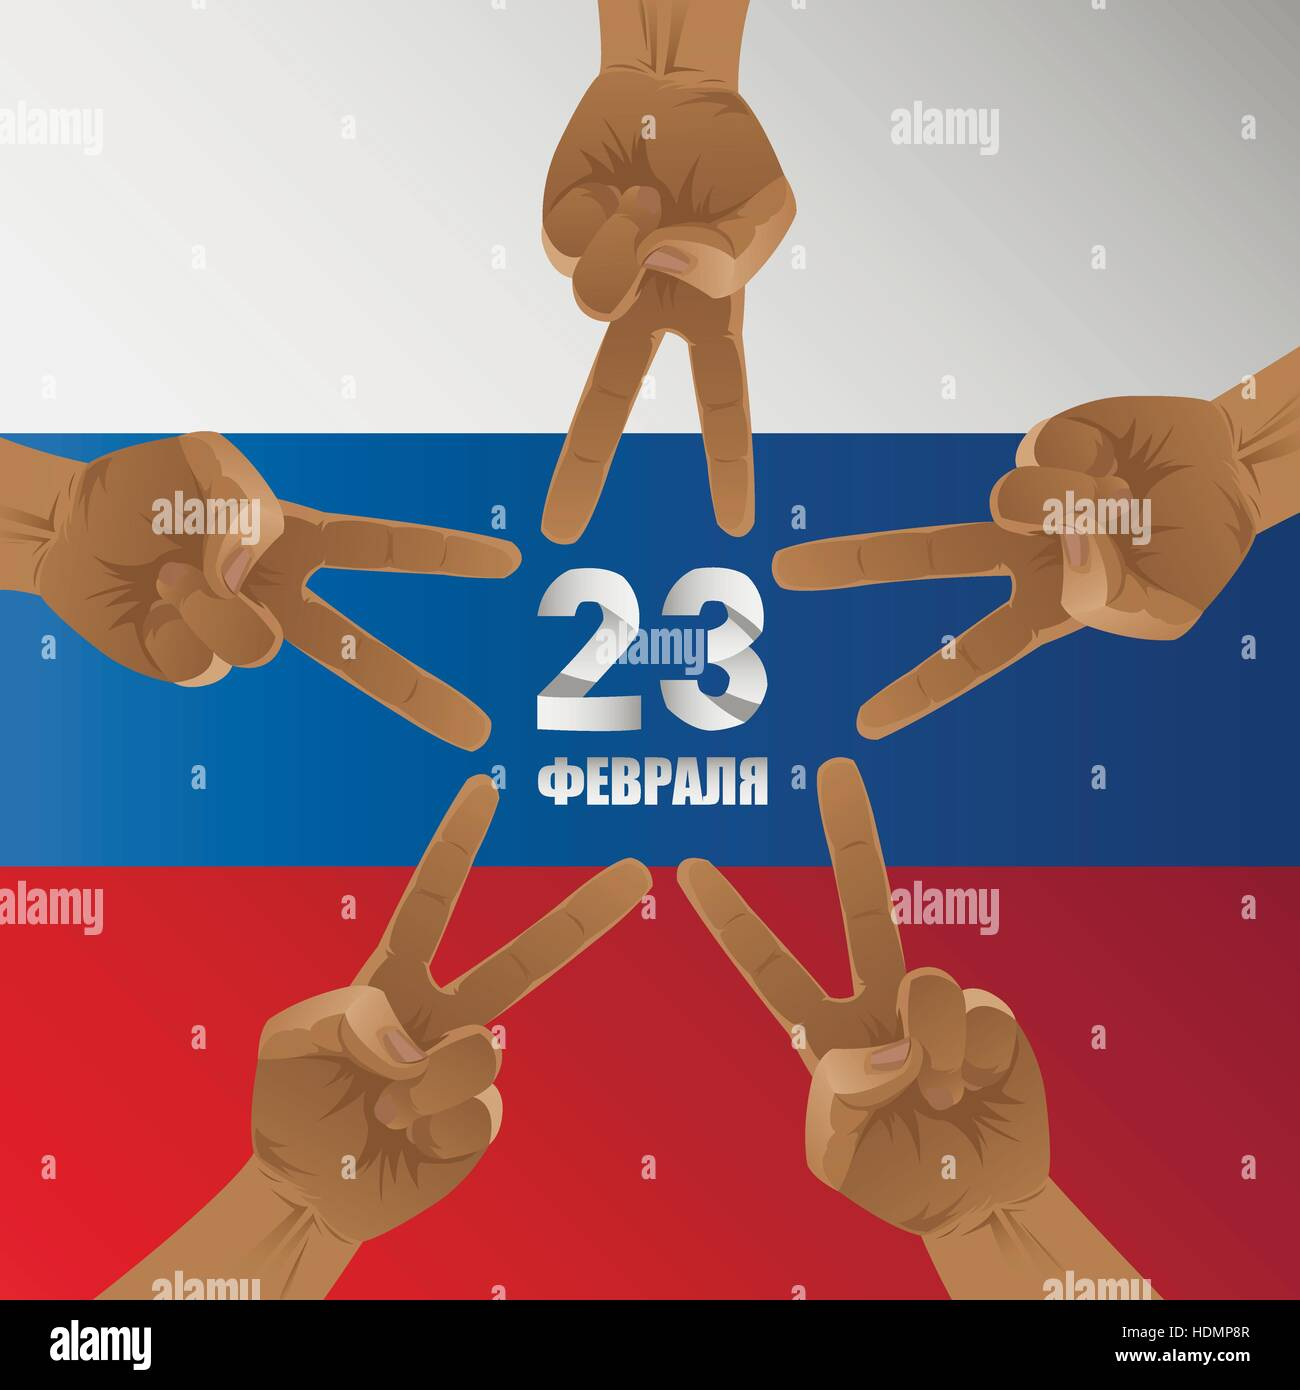 23 February. Day of defenders of fatherland. Patriotic holiday in Russia. Five victory men hands on Russian flag - Stock Vector